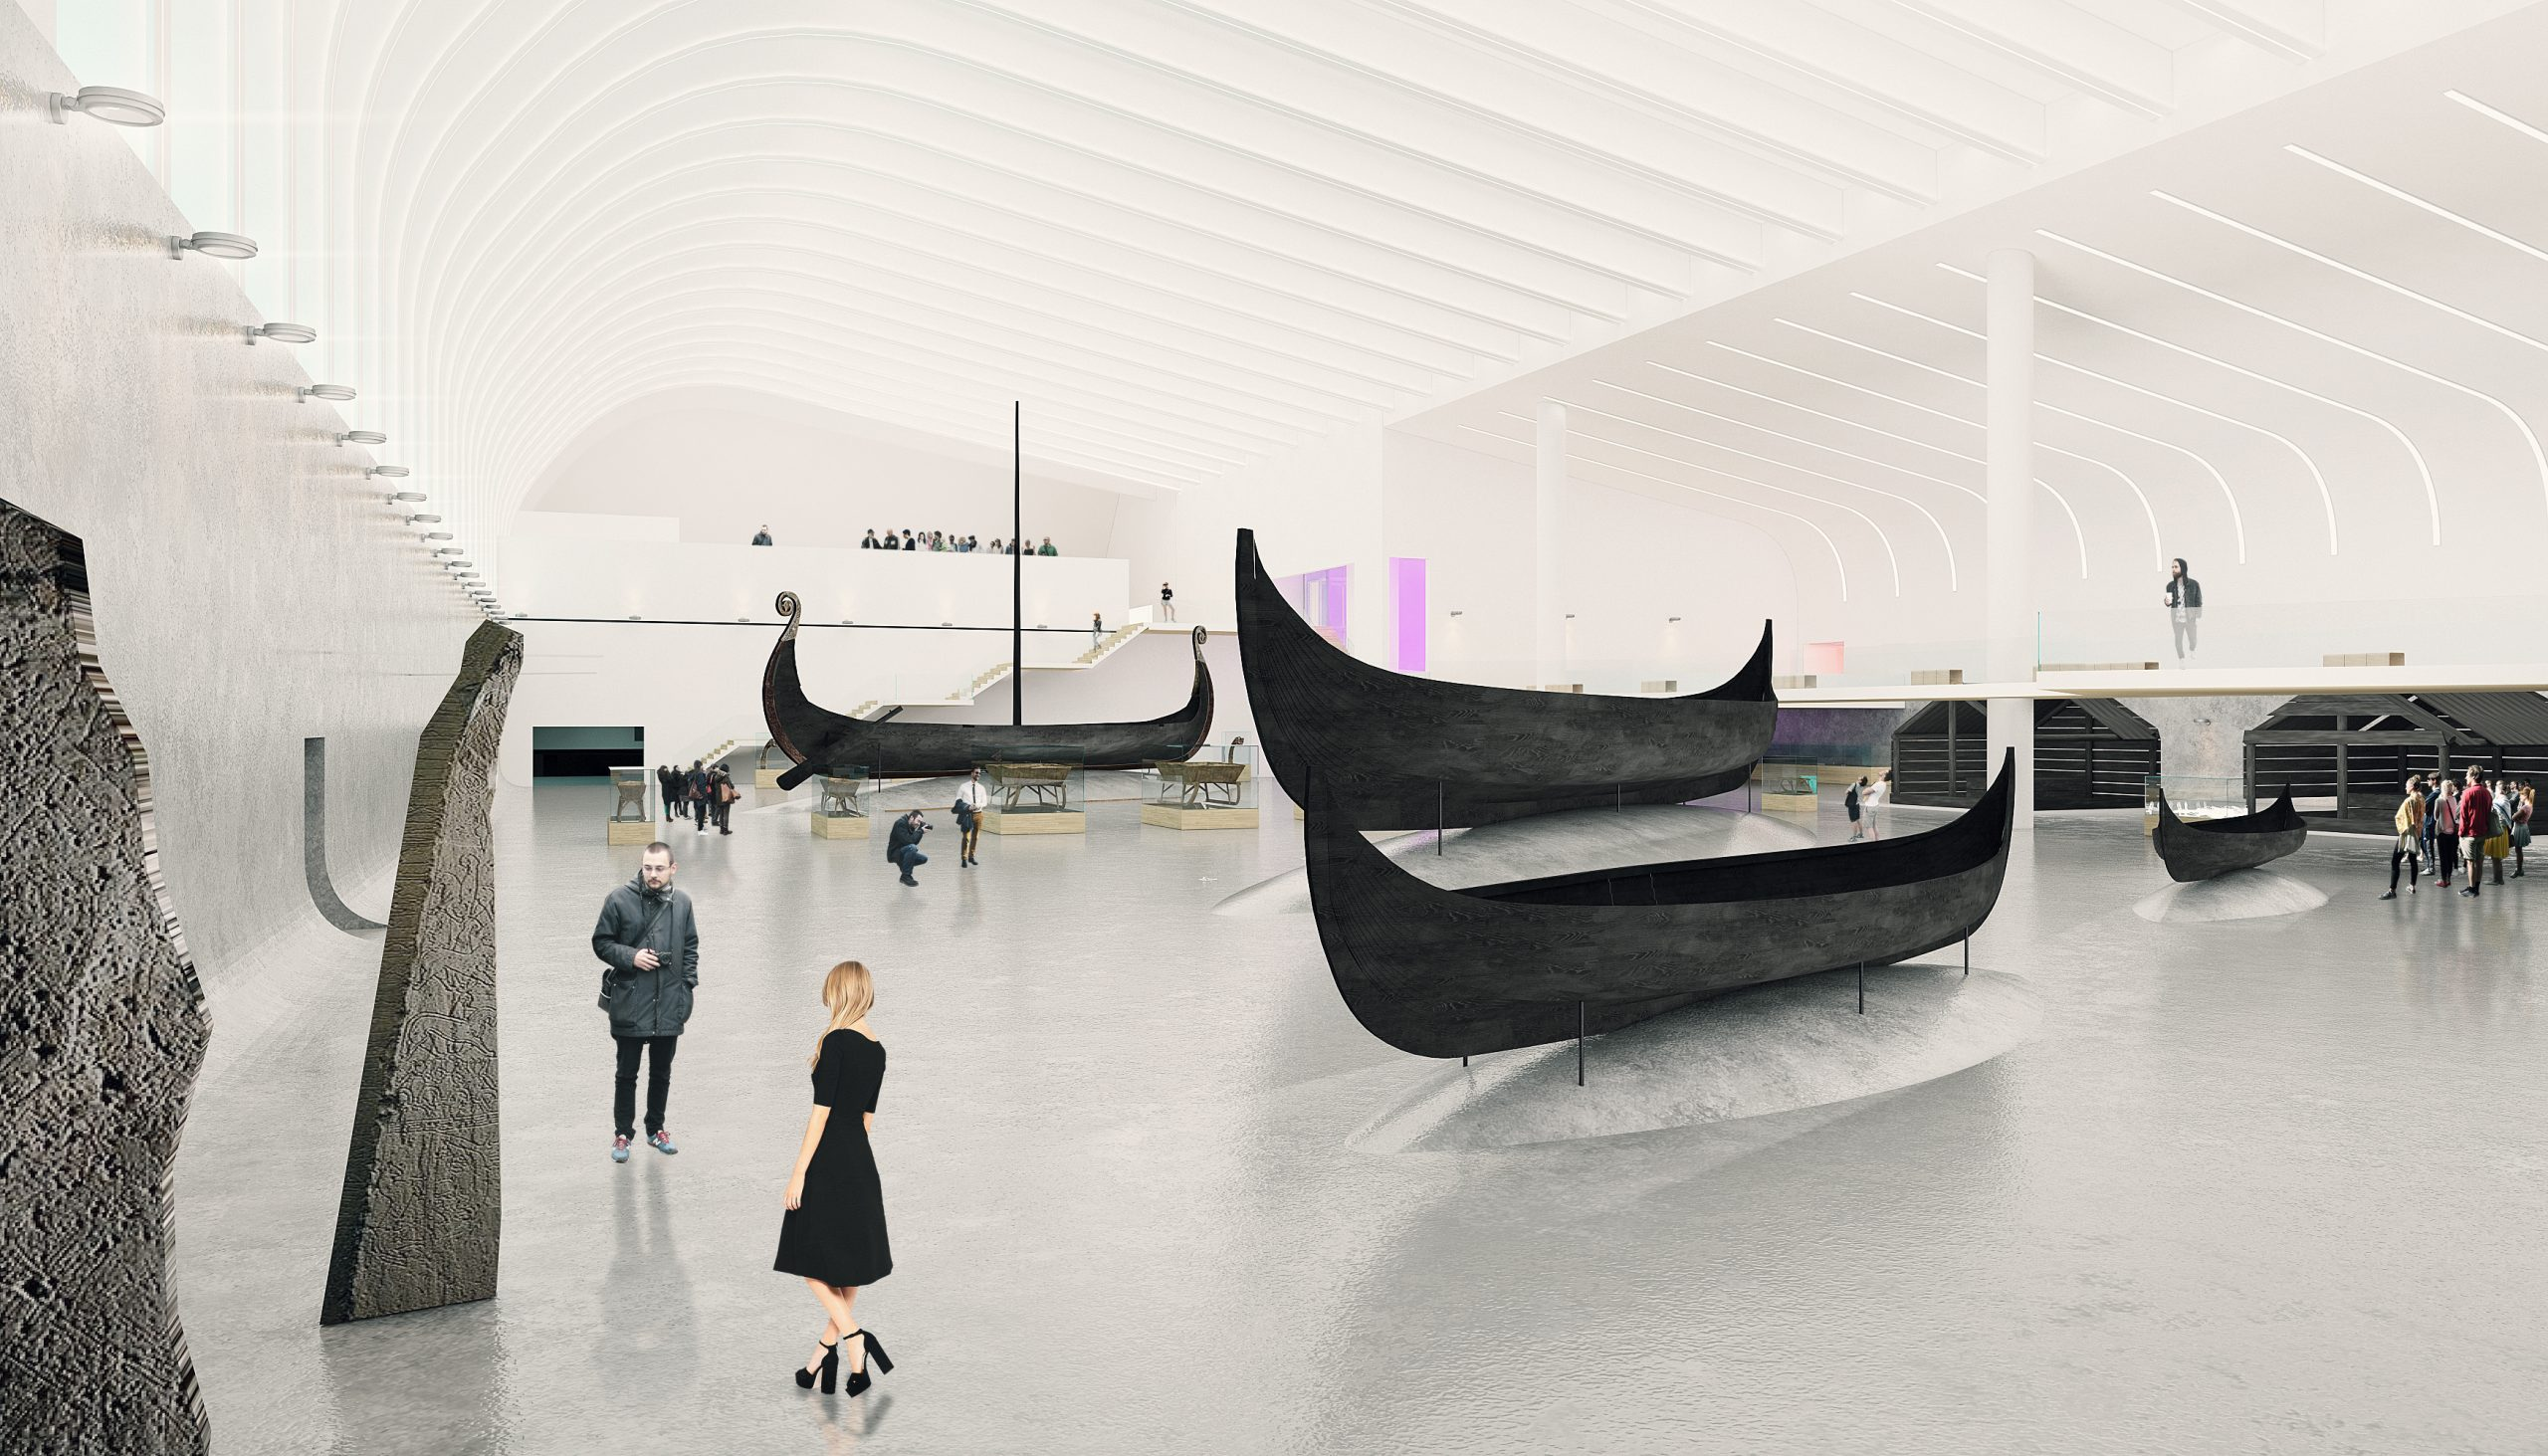 https://nbc-arhitect.ro/wp-content/uploads/2020/10/NBC-Arhitect-_-contests-_-Viking-Museum-Oslo_5-scaled.jpg